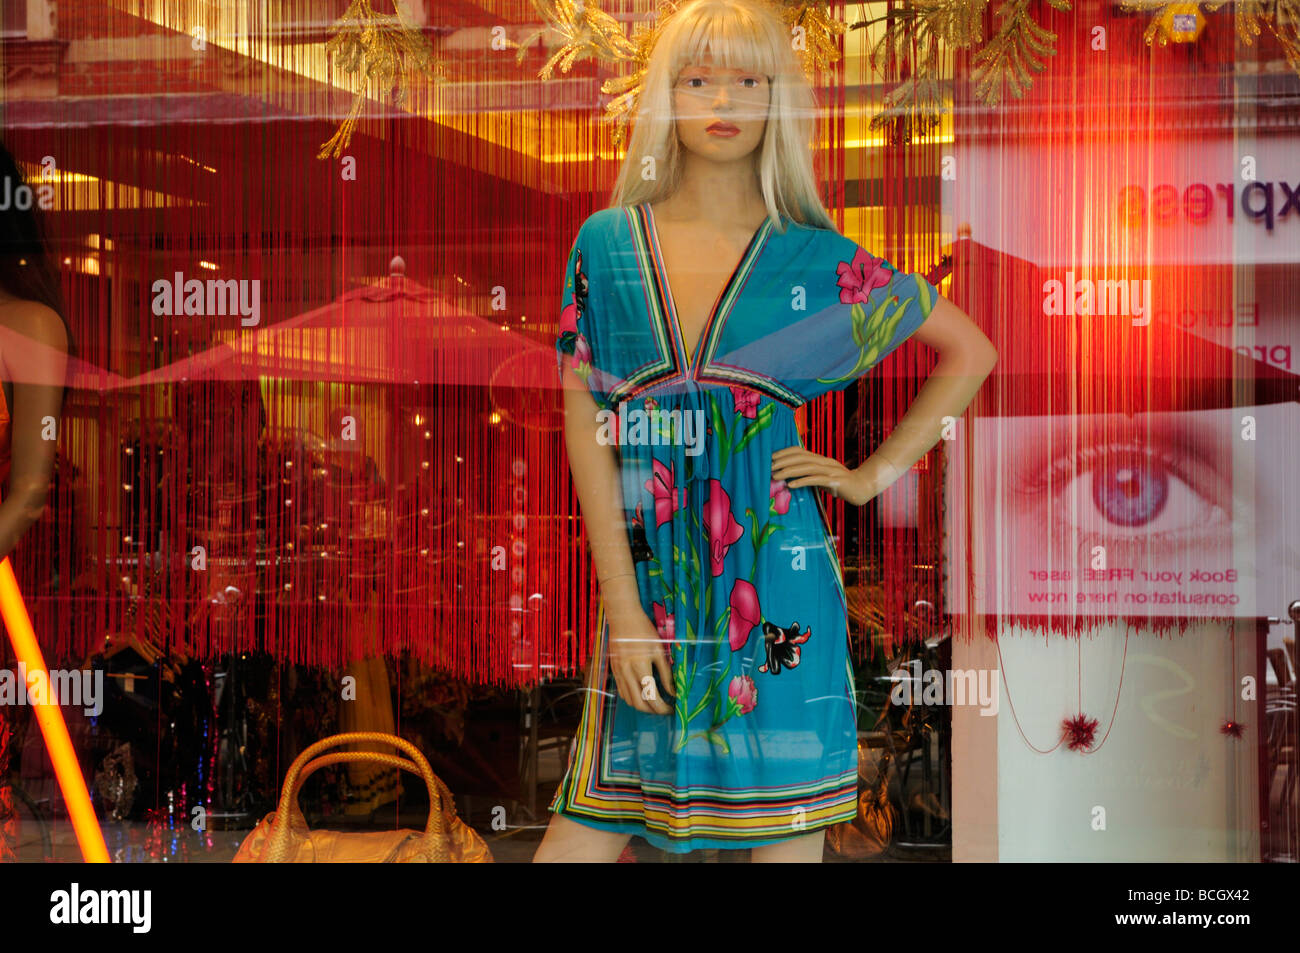 Mannequin and reflections in 'Bukhara' clothes shop window display, Cambridge England UK - Stock Image